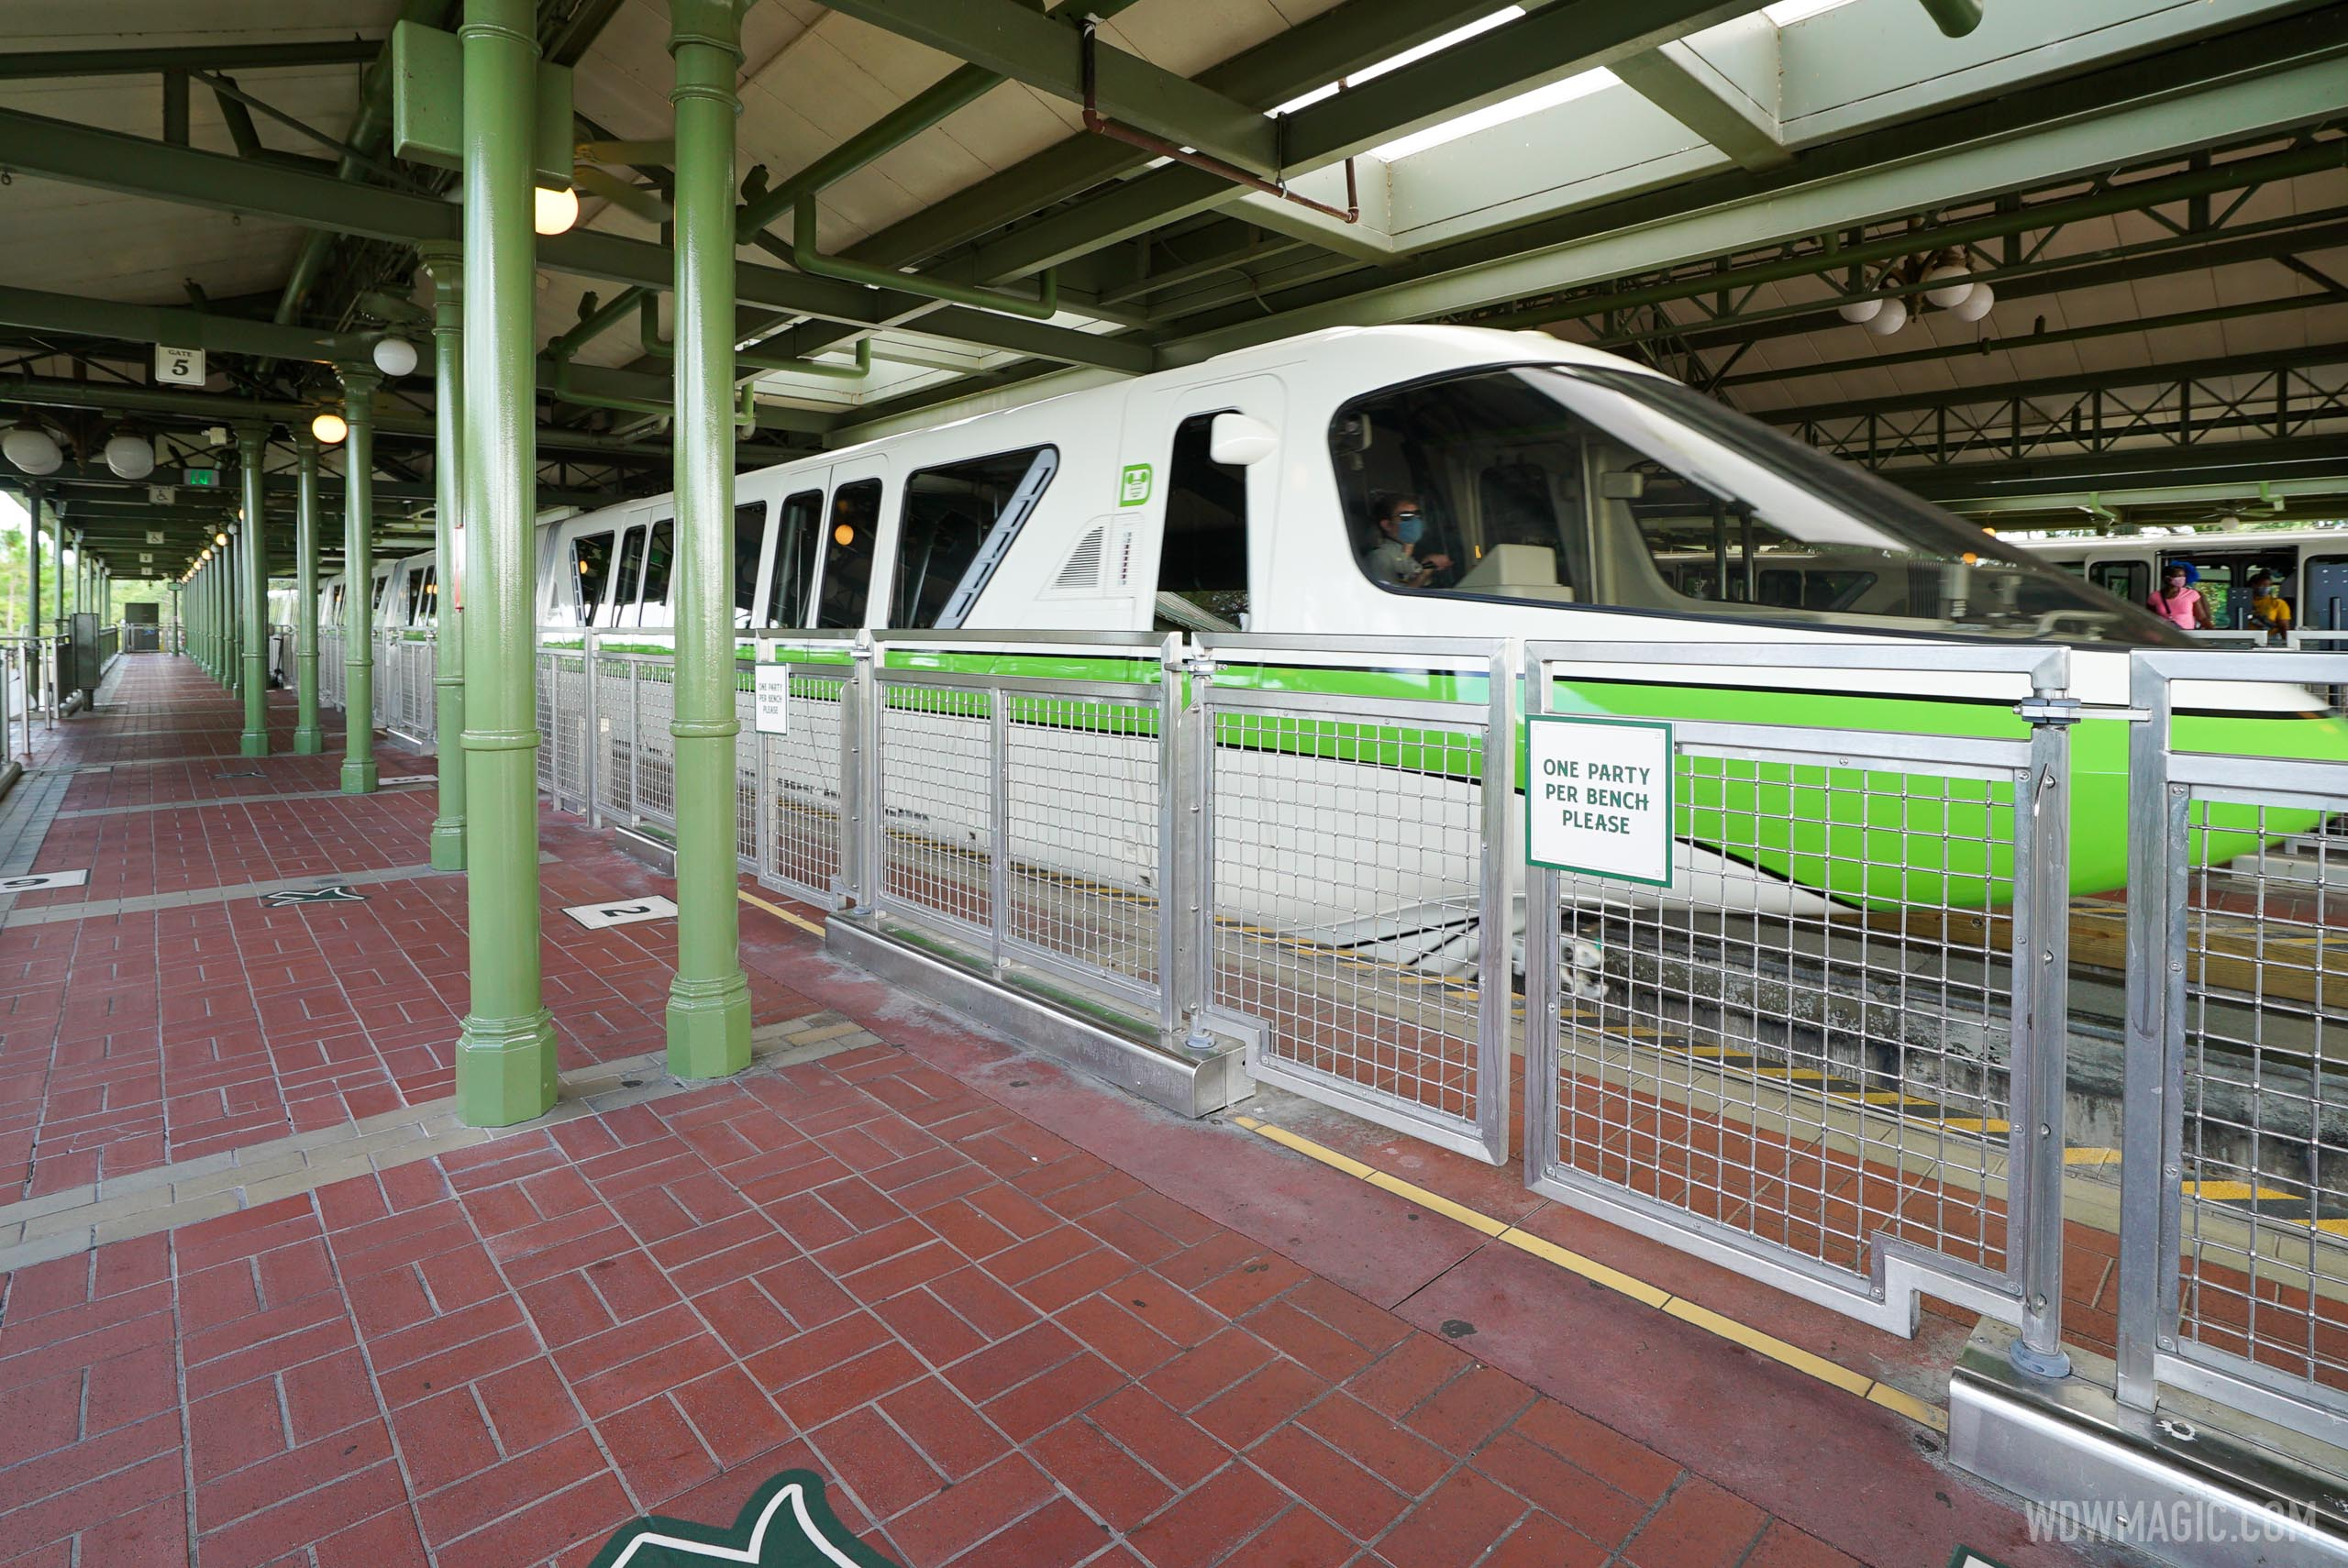 Monorails have marked boarding groups